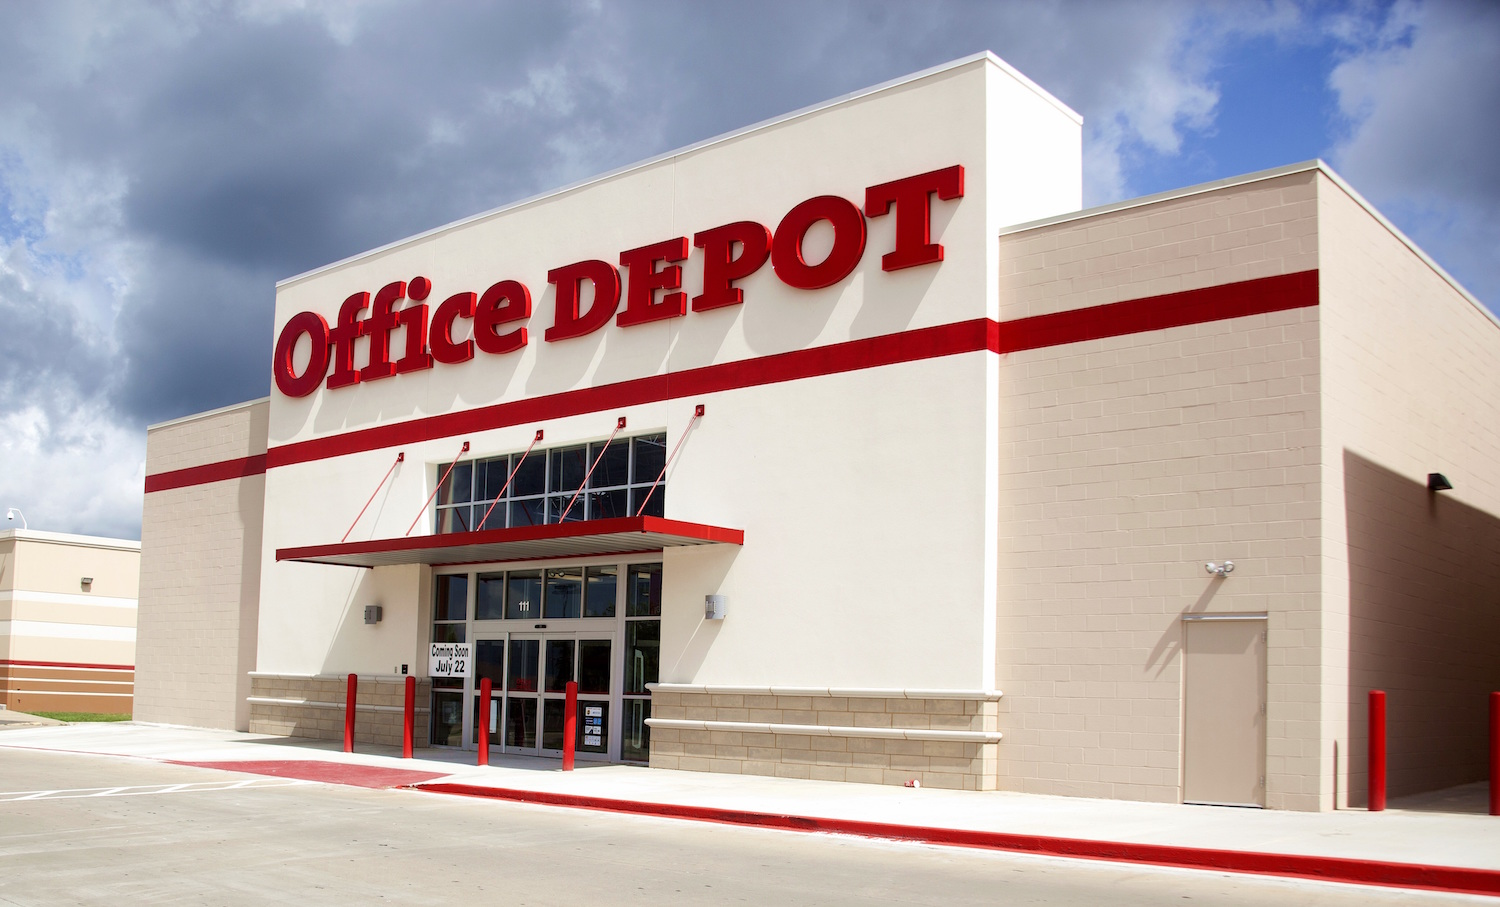 Office Depot - Texarkana, TX*